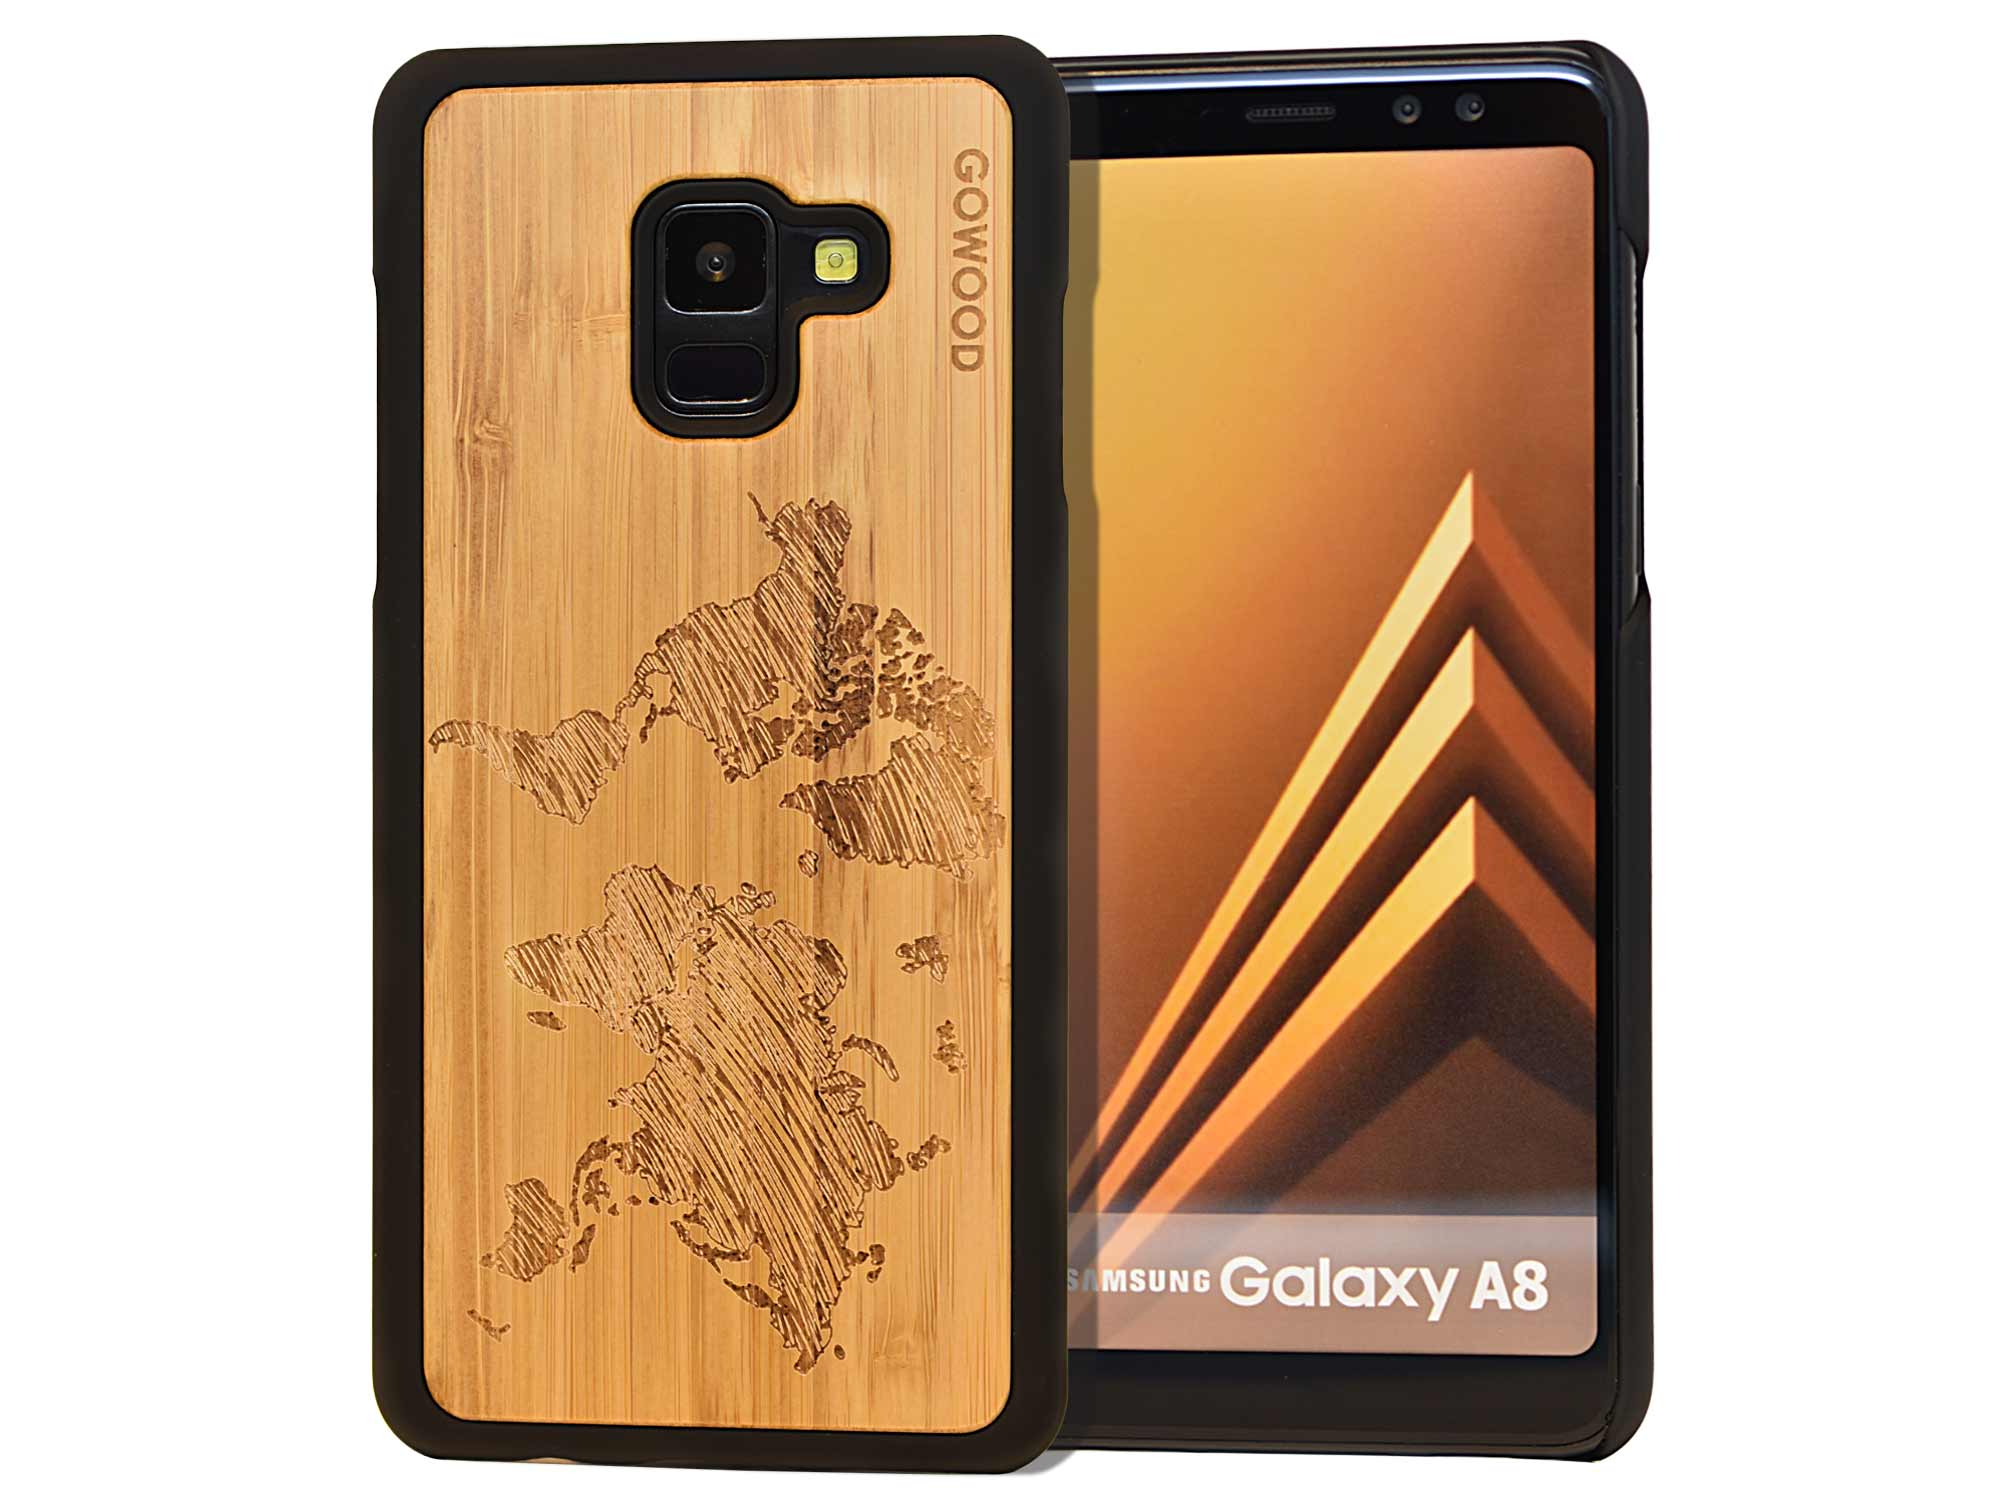 separation shoes 282c9 a3843 Samsung Galaxy A8 wood case, Galaxy A8 case bamboo world map | GW